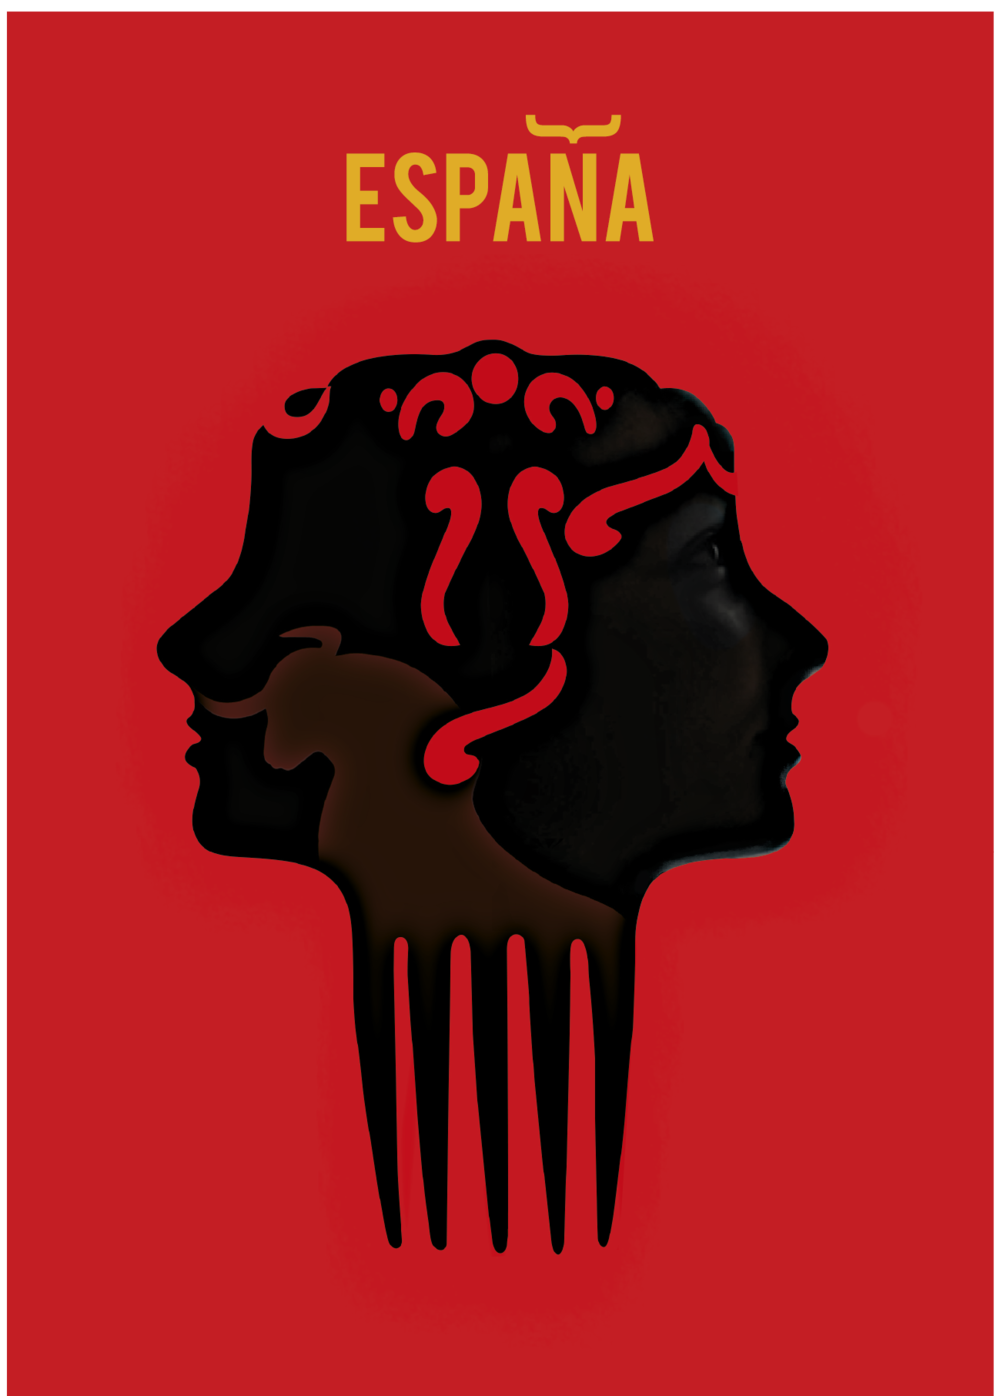 spain  08  _  Poster created in first intance as an image which compact spanish culture, posterior it has been used like Magazine cover